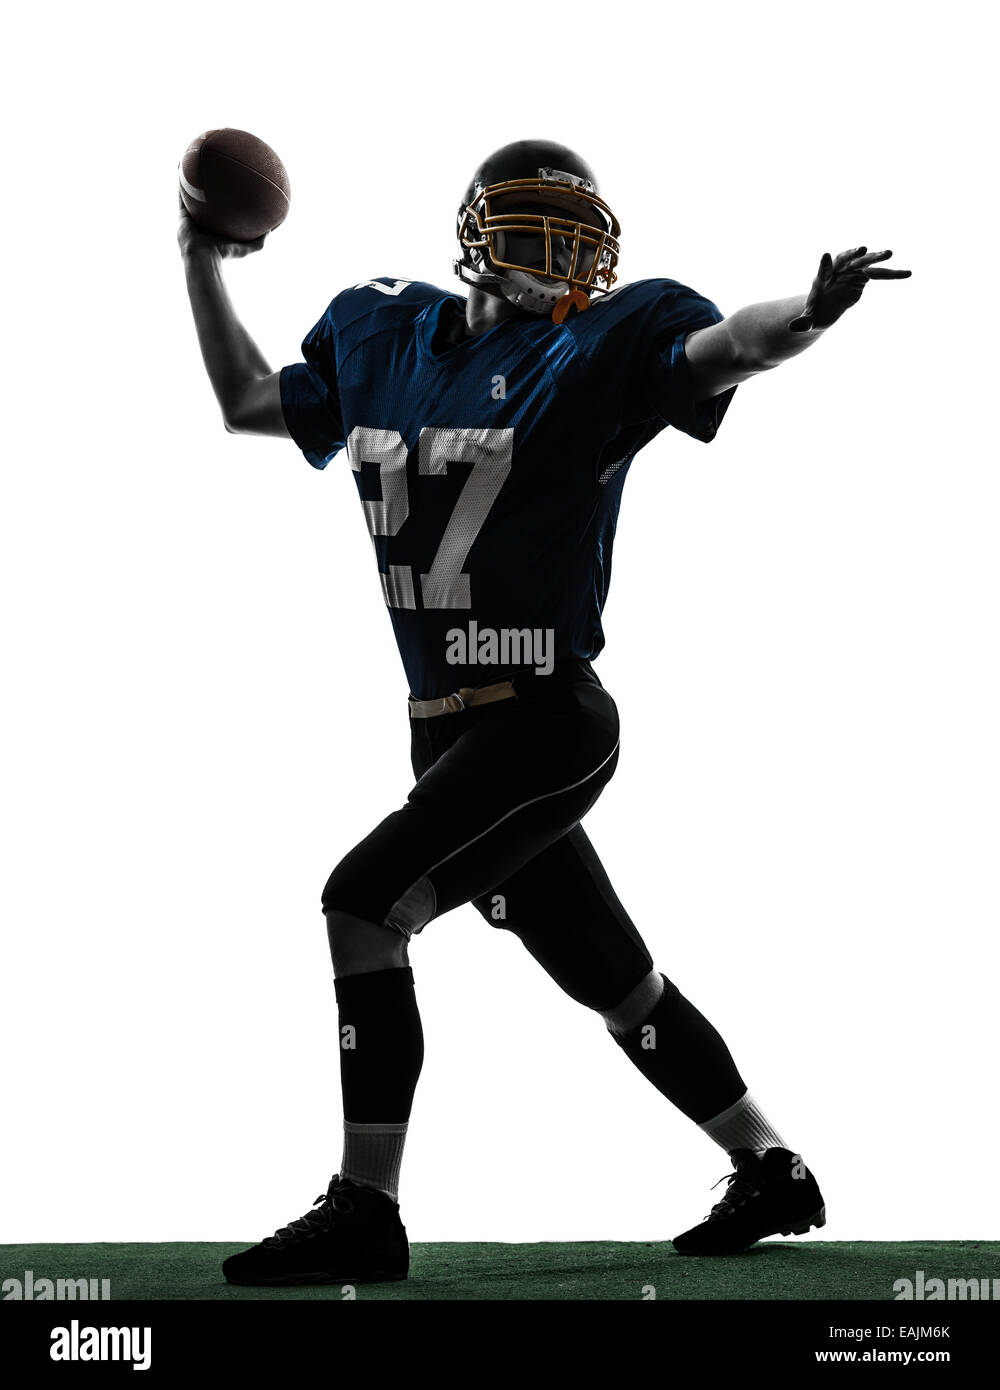 one  quarterback american throwing football player man in silhouette studio isolated on white background - Stock Image